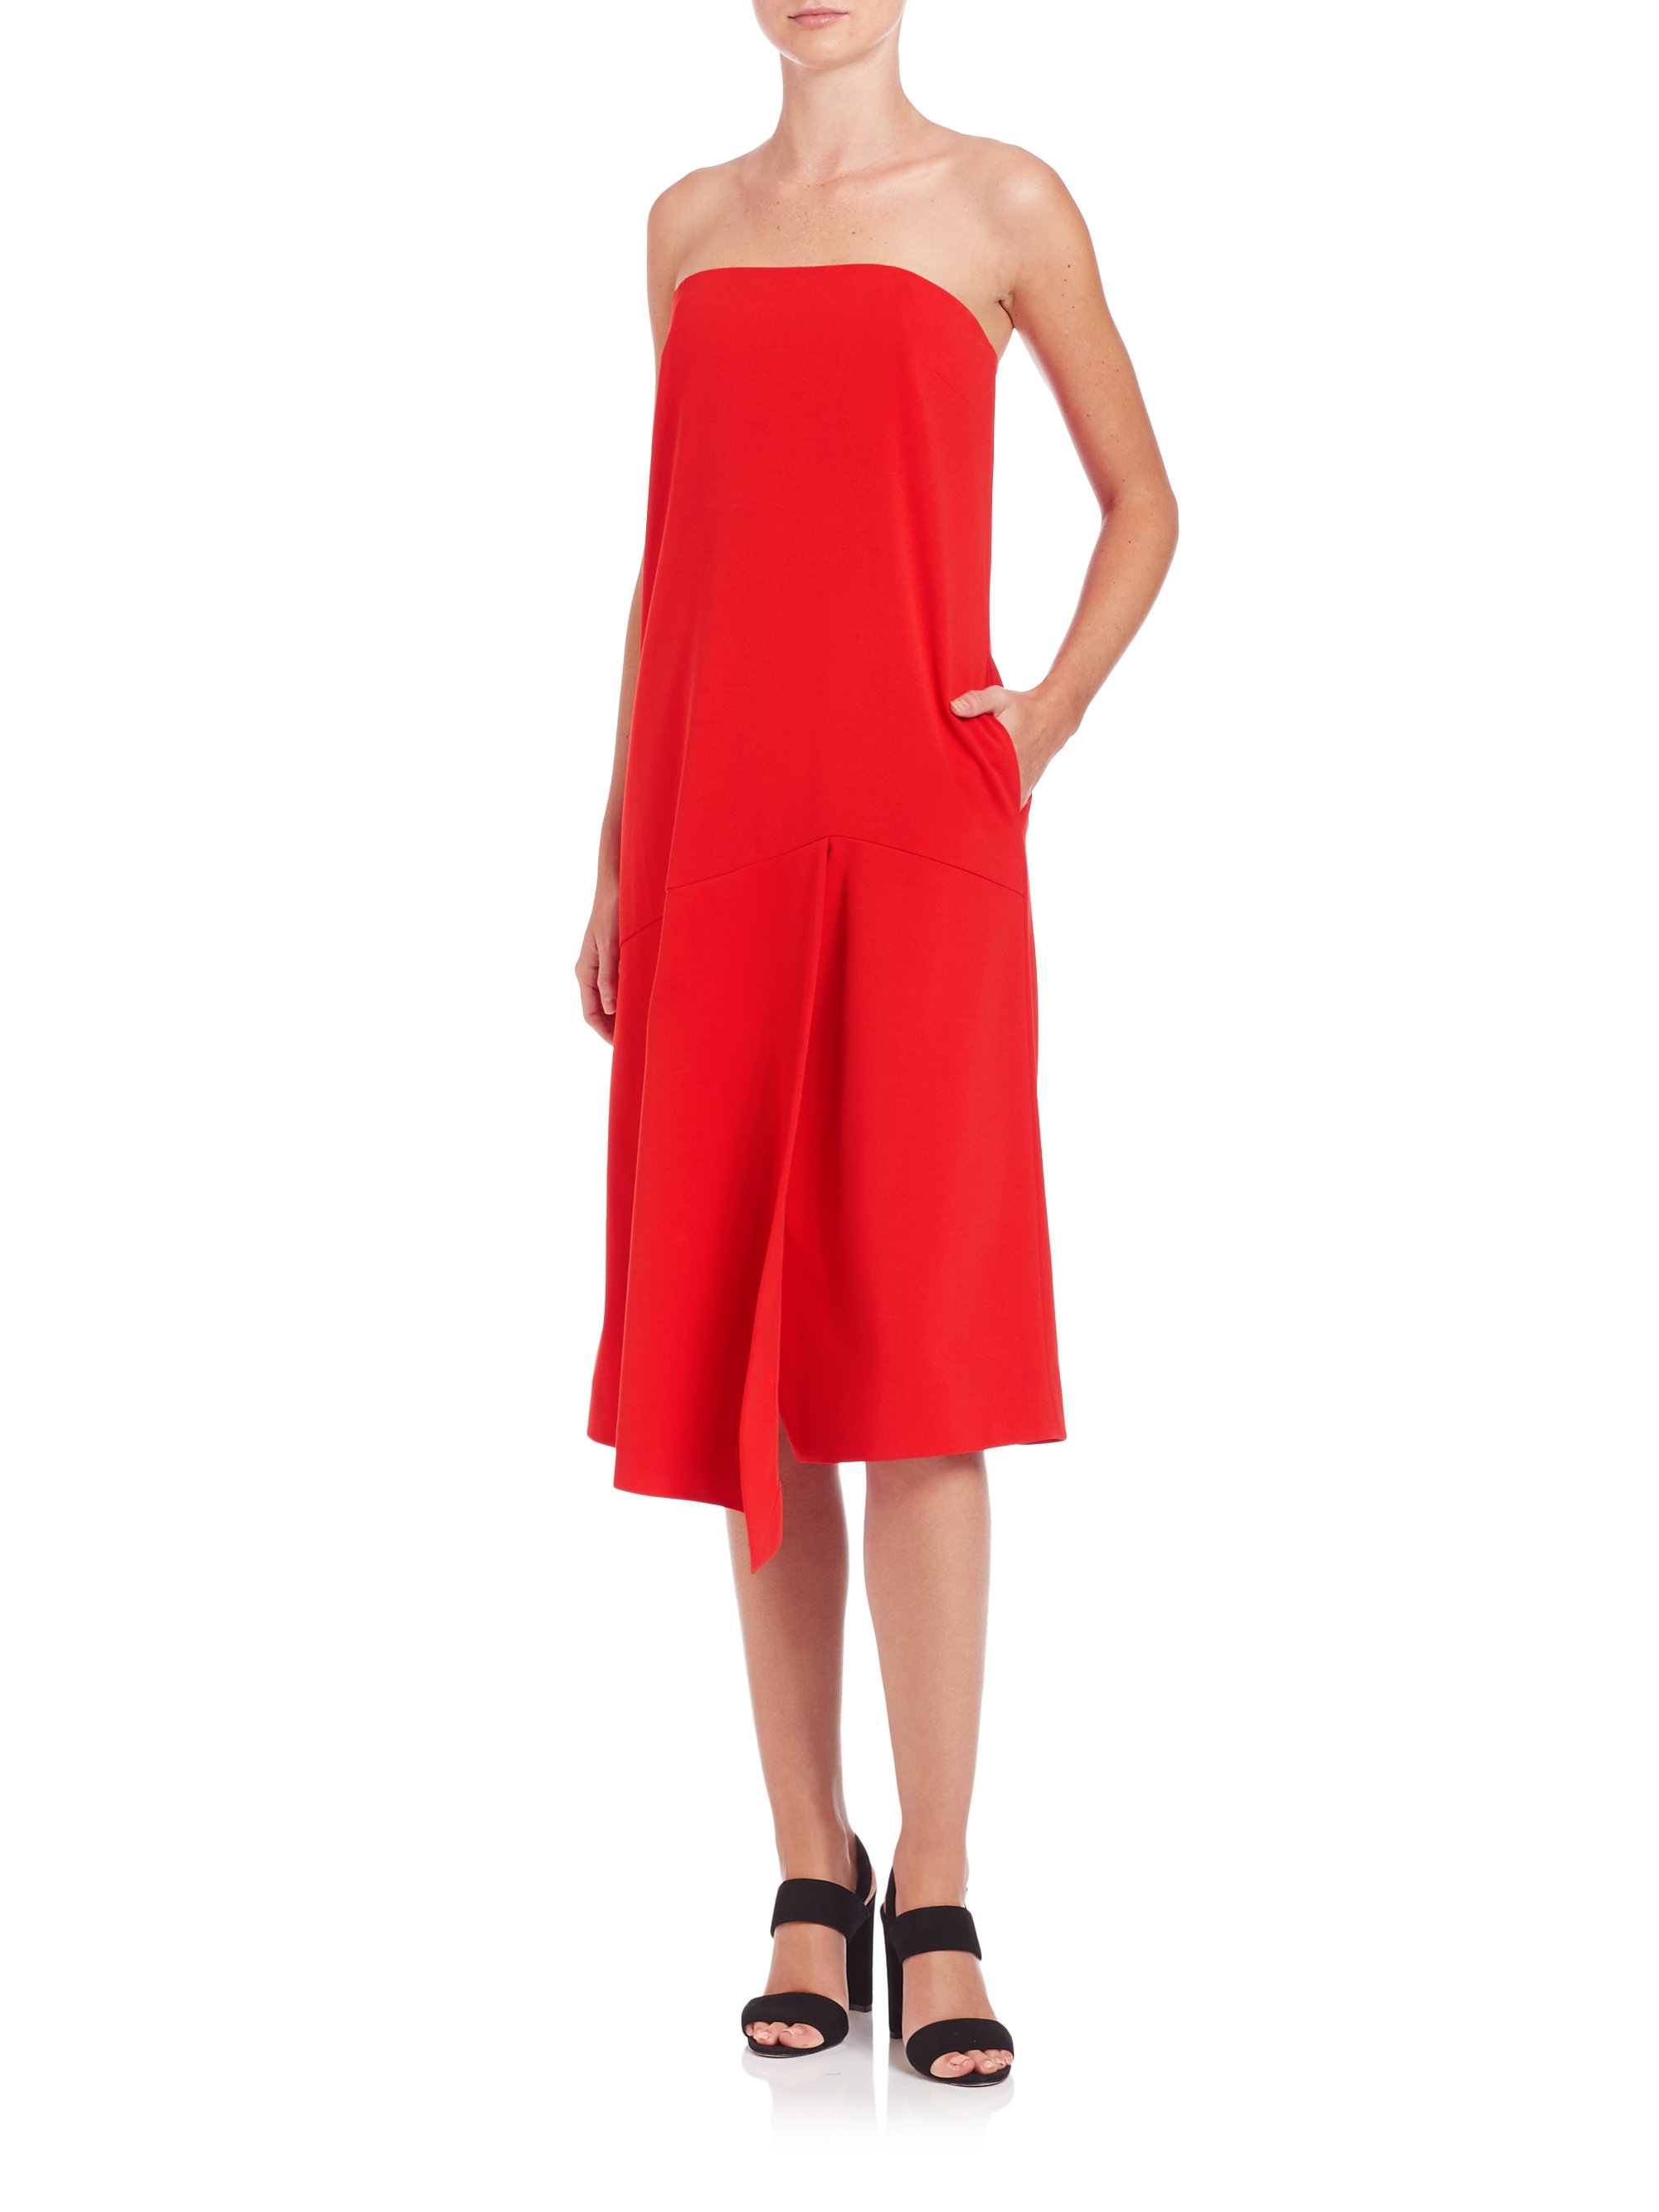 Tibi Structured Crepe Strapless Dress in Red - Lyst